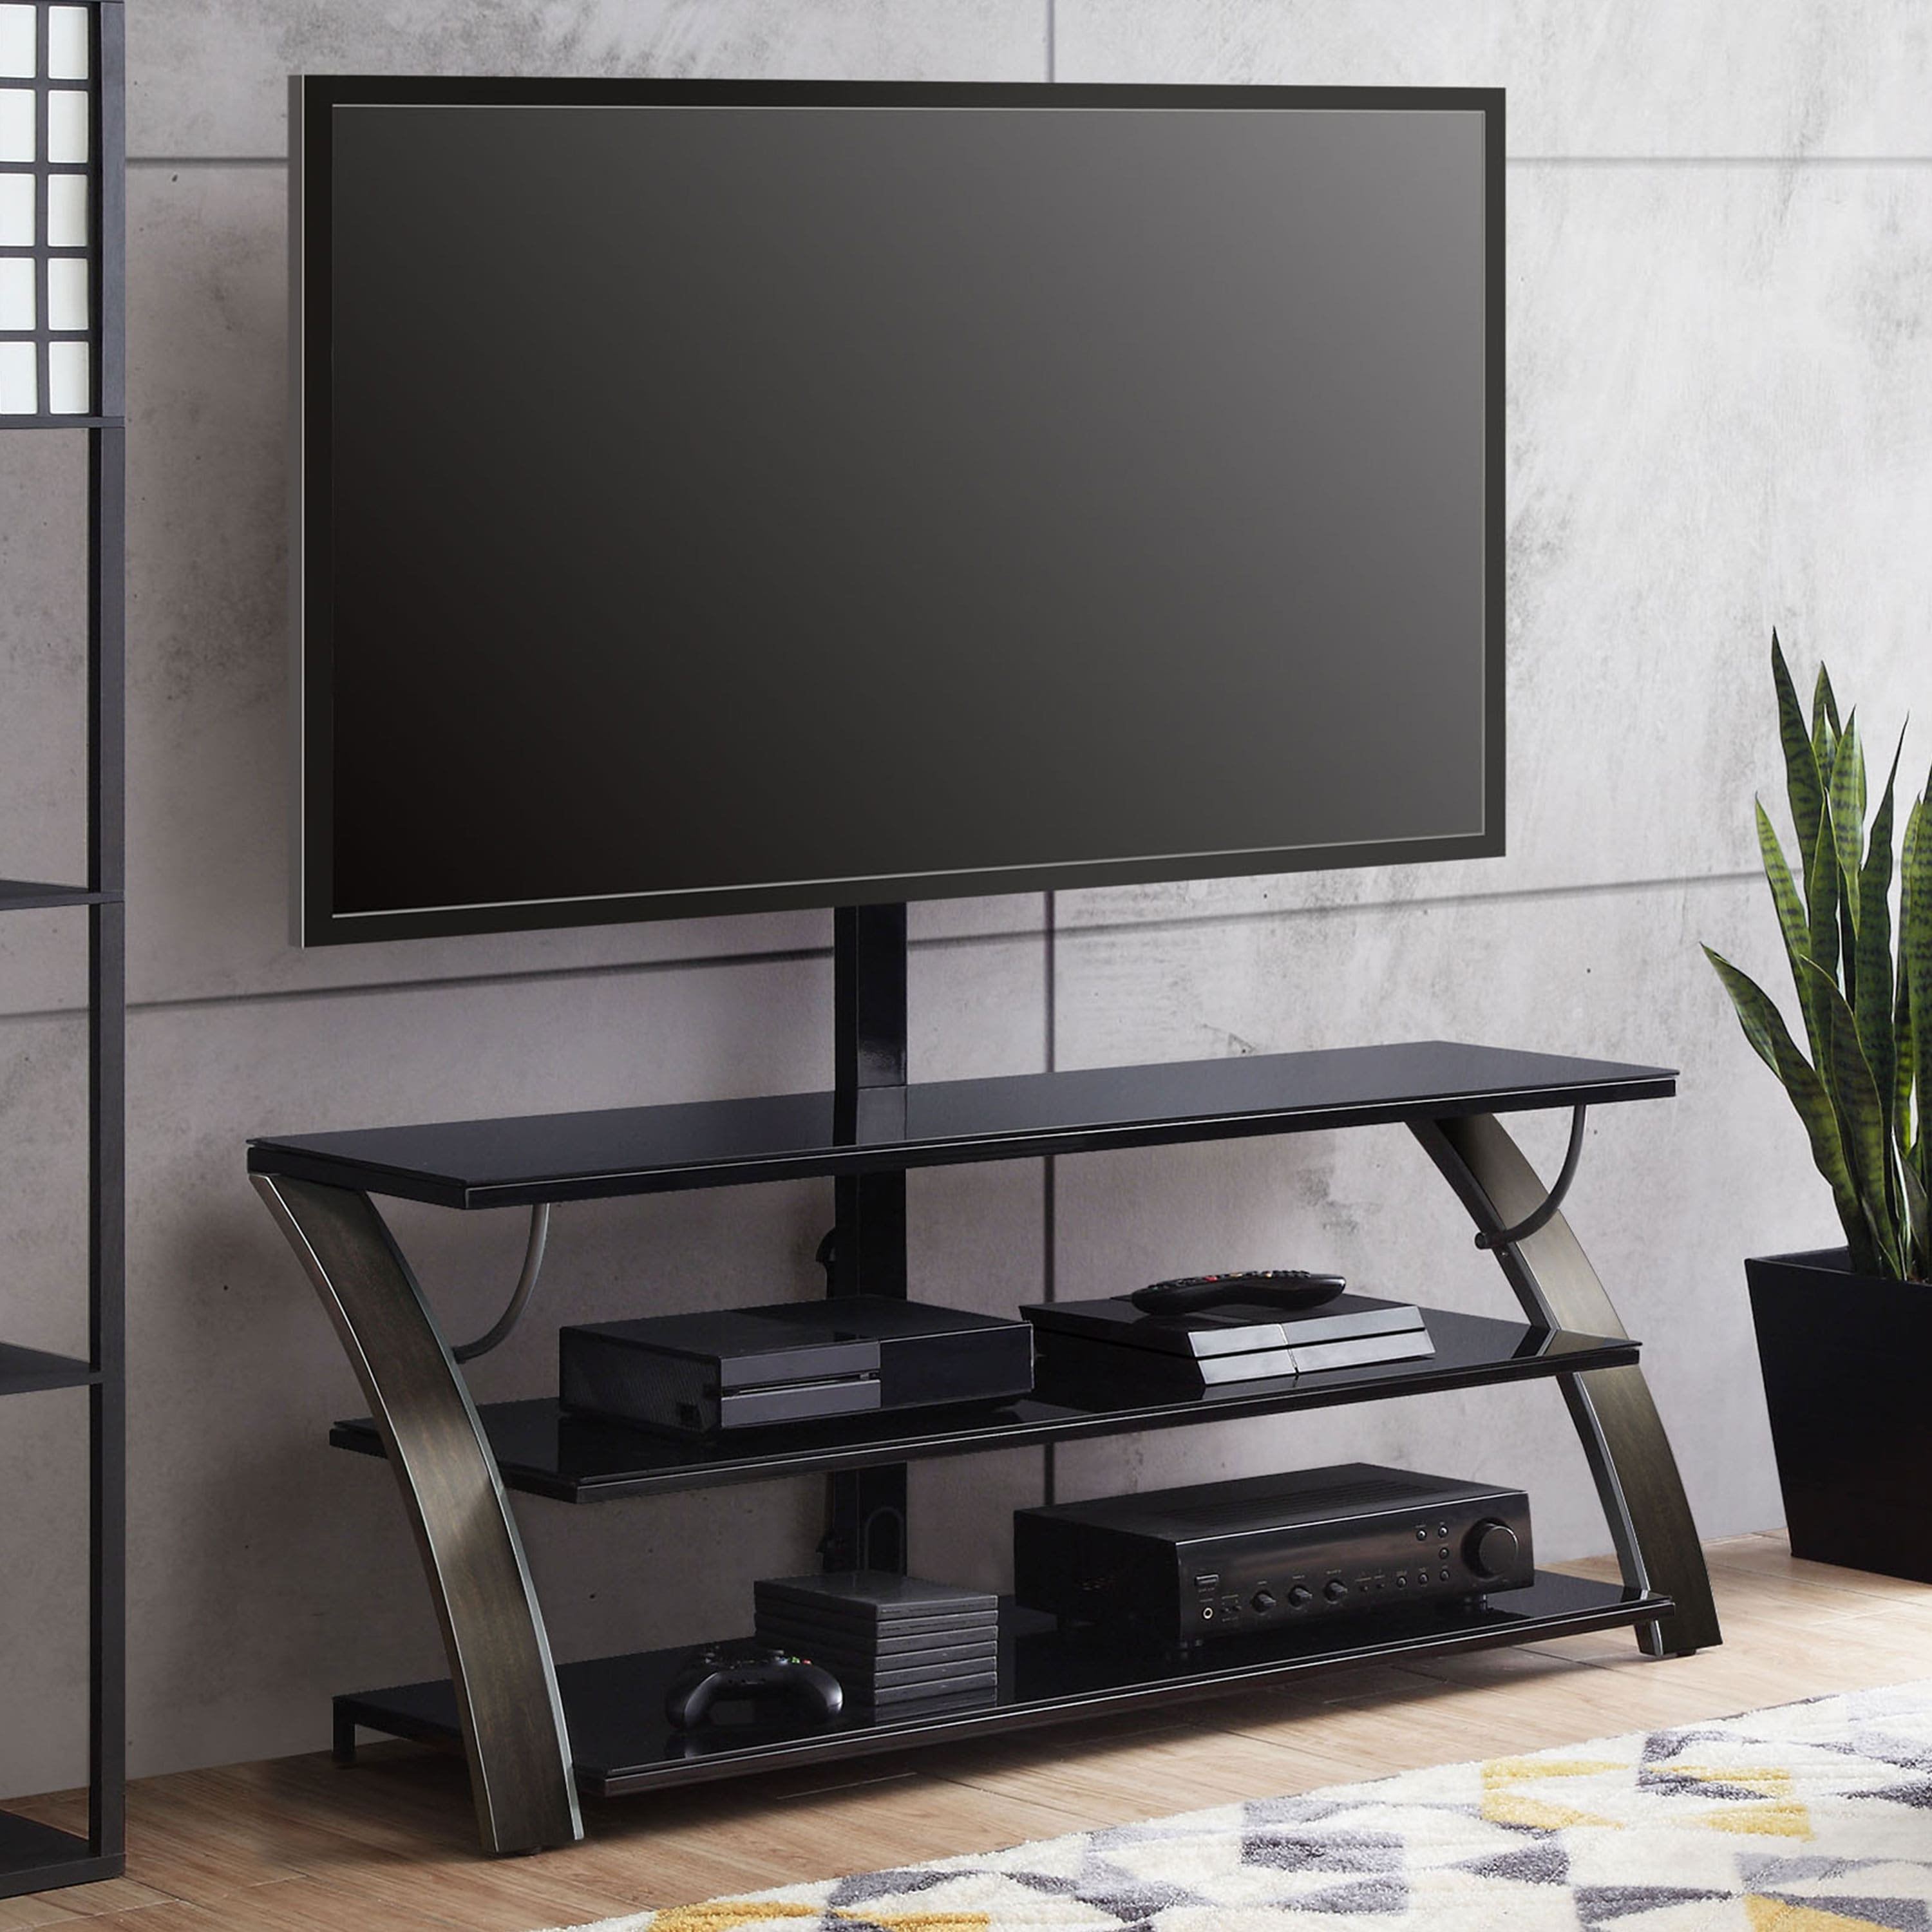 Whalen Payton 3 In 1 Flat Panel Tv Stand For Tvs Up To 65 105